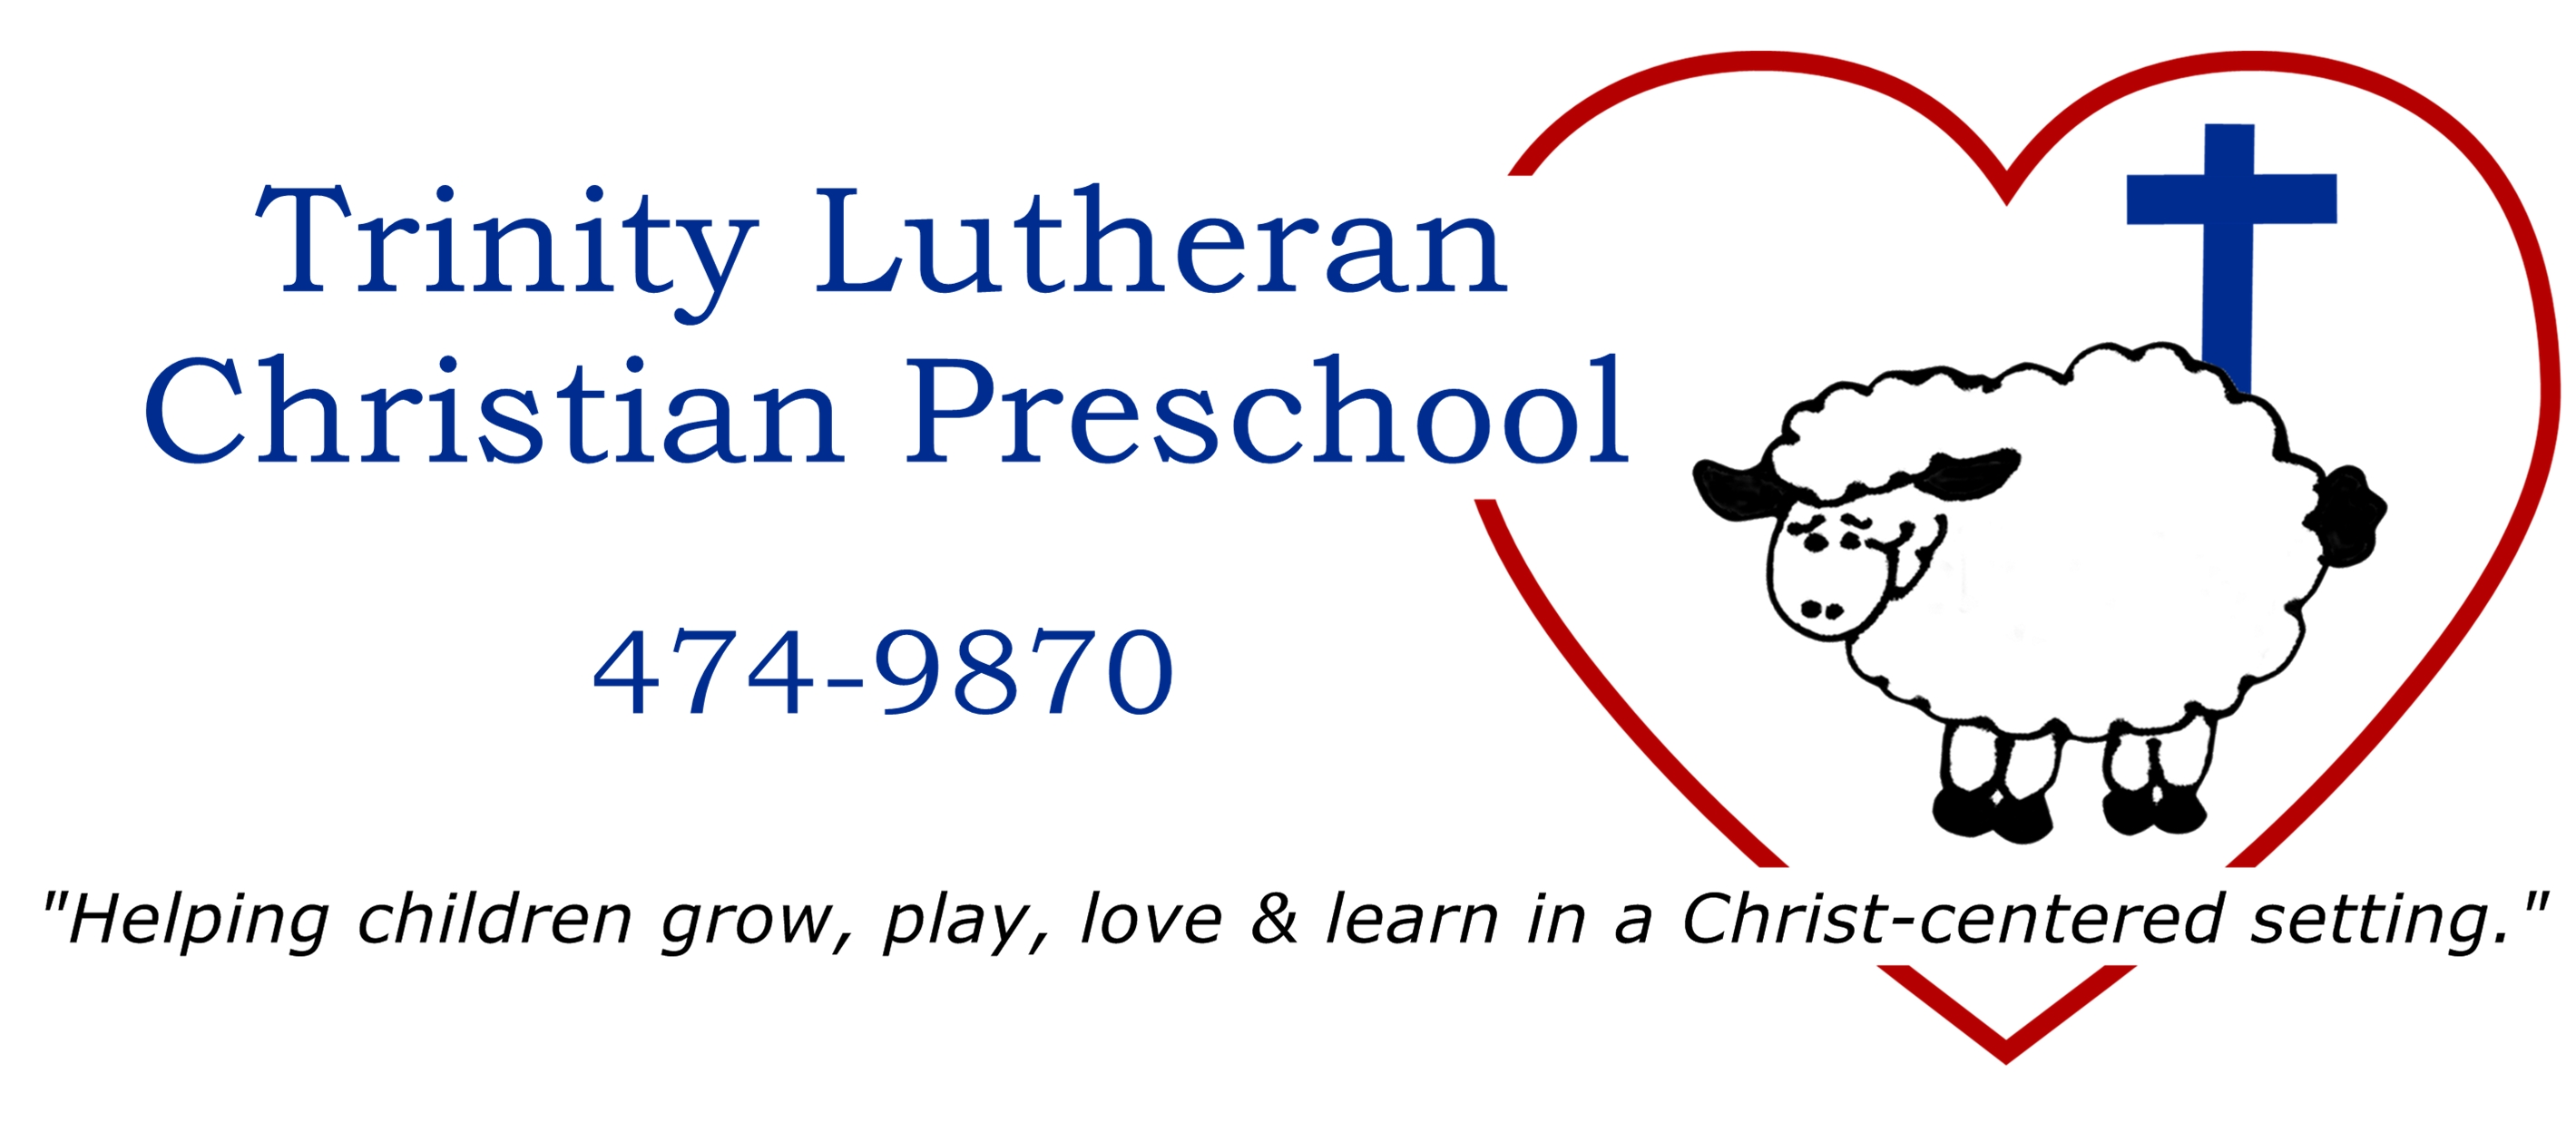 tlc preschool logo 2014